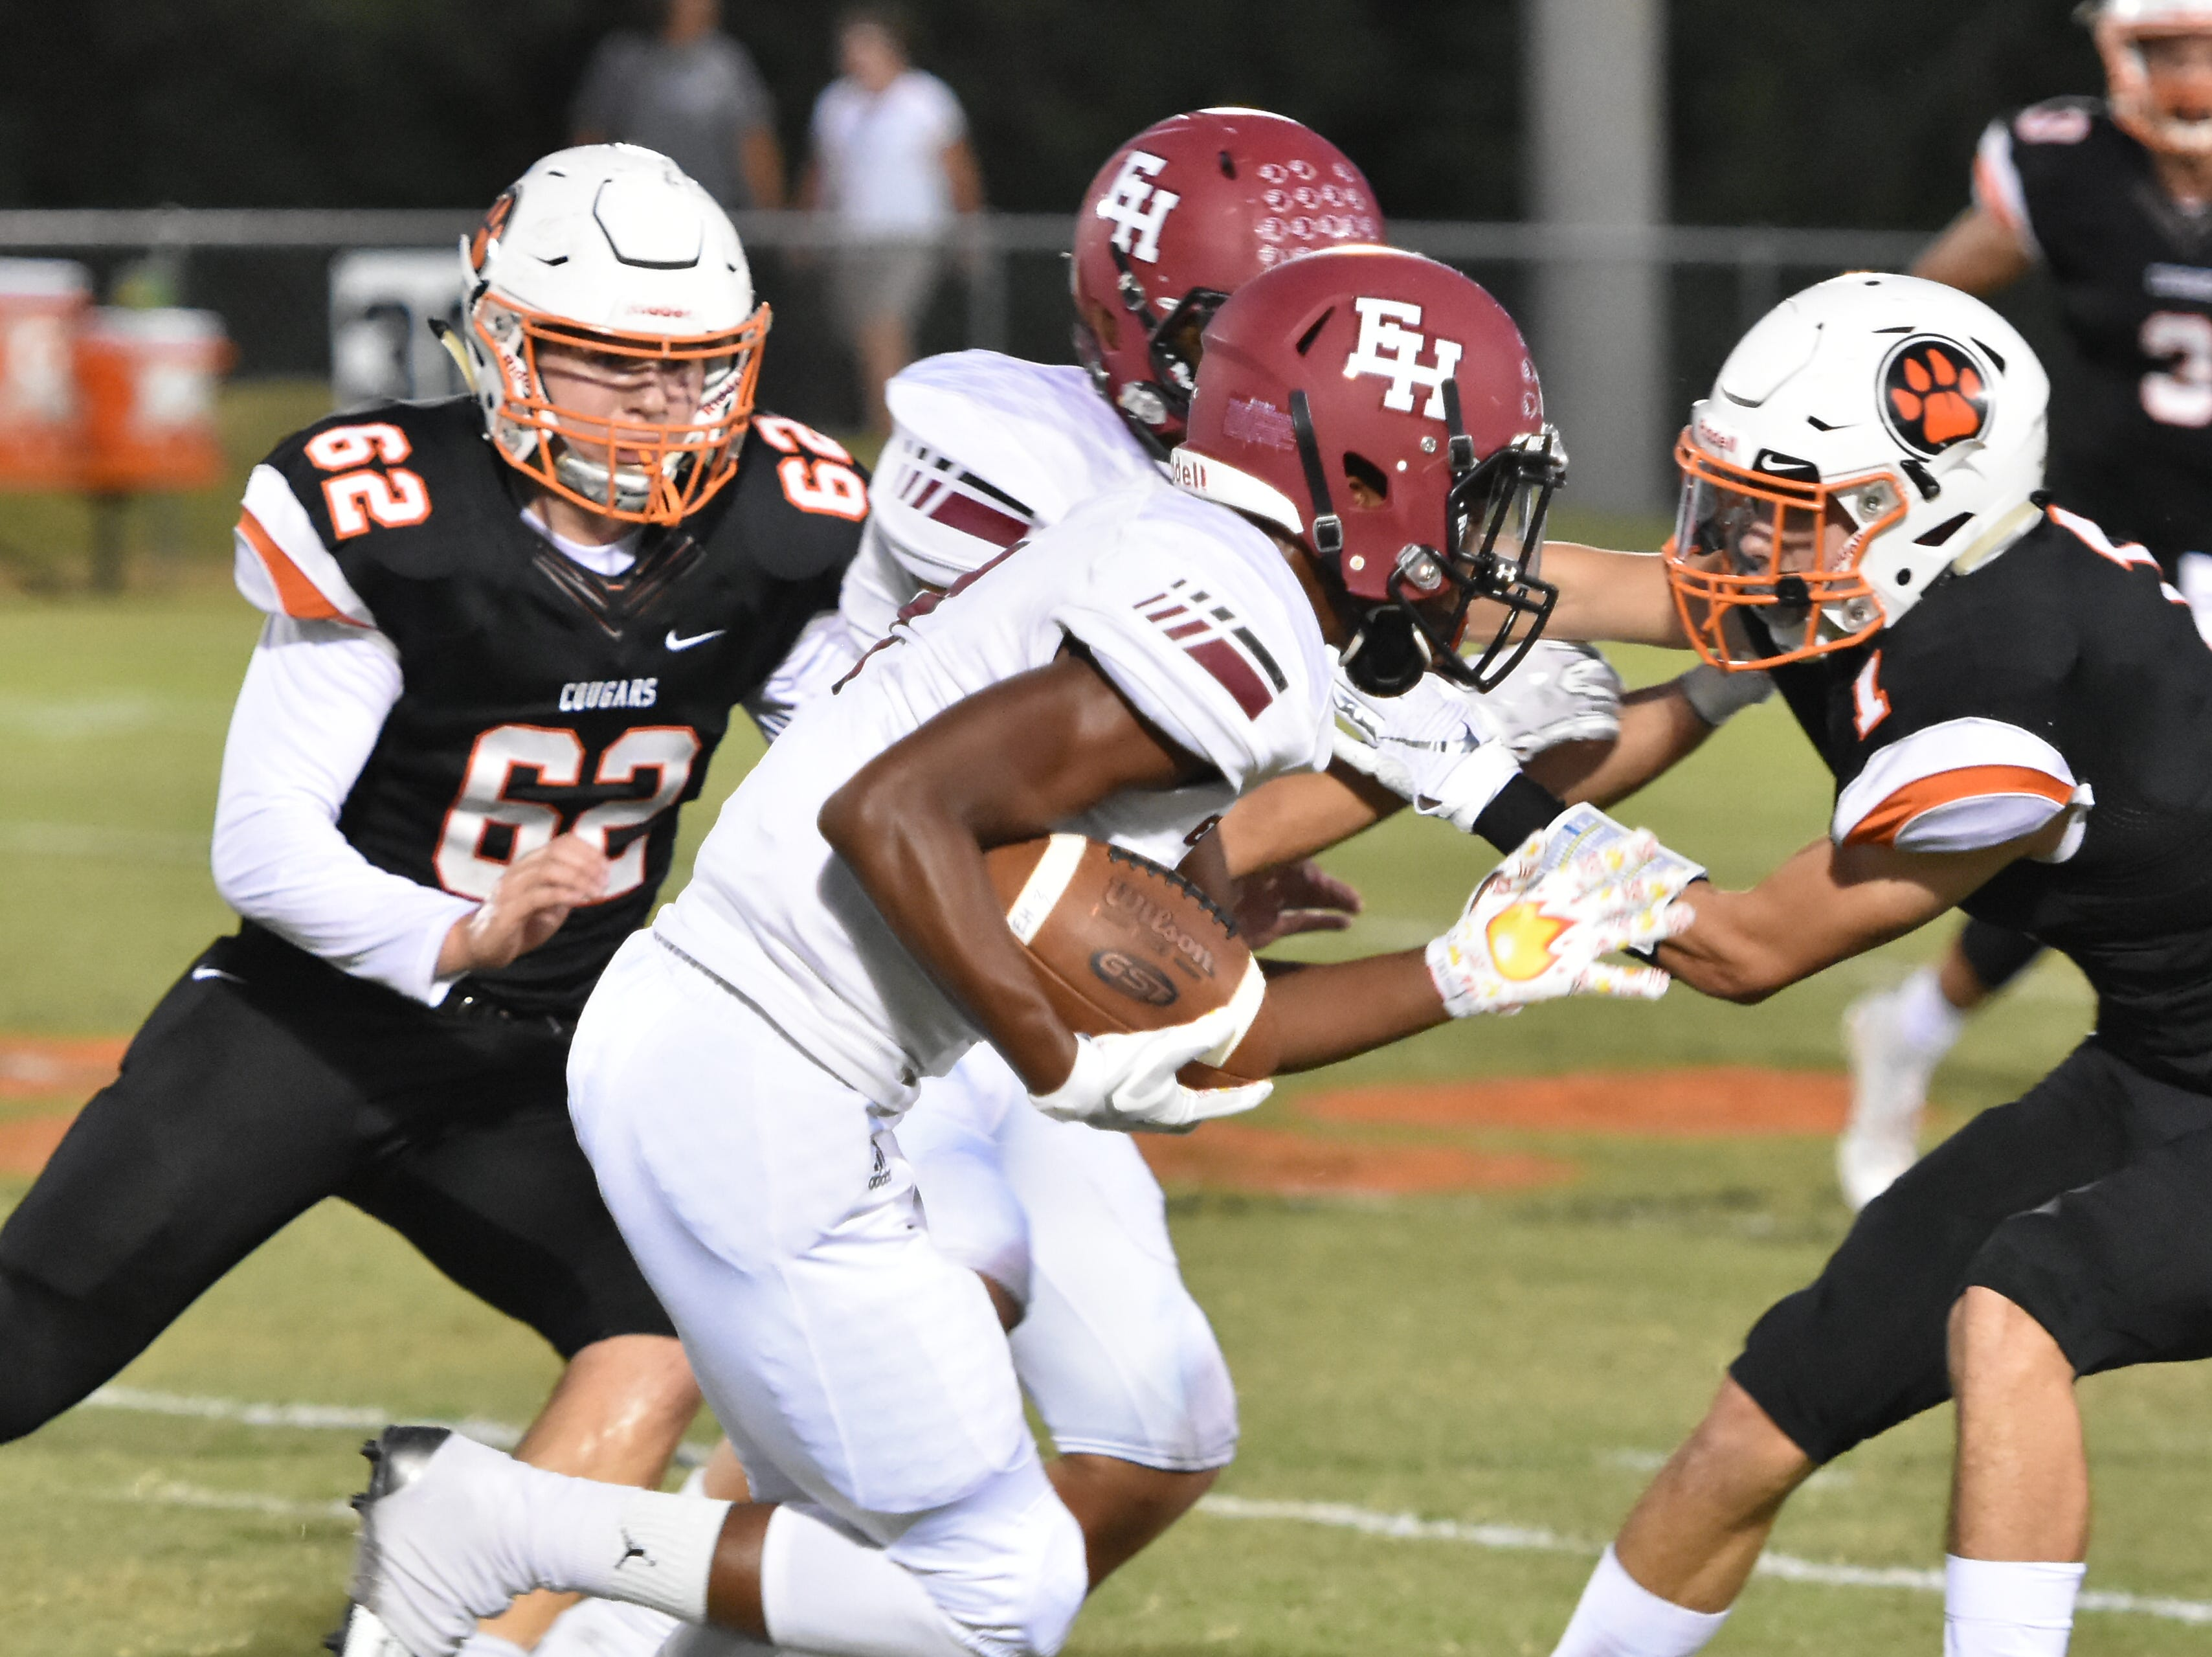 Ezell-Harding's Braxton Coleman rushes against MTCS Friday night.